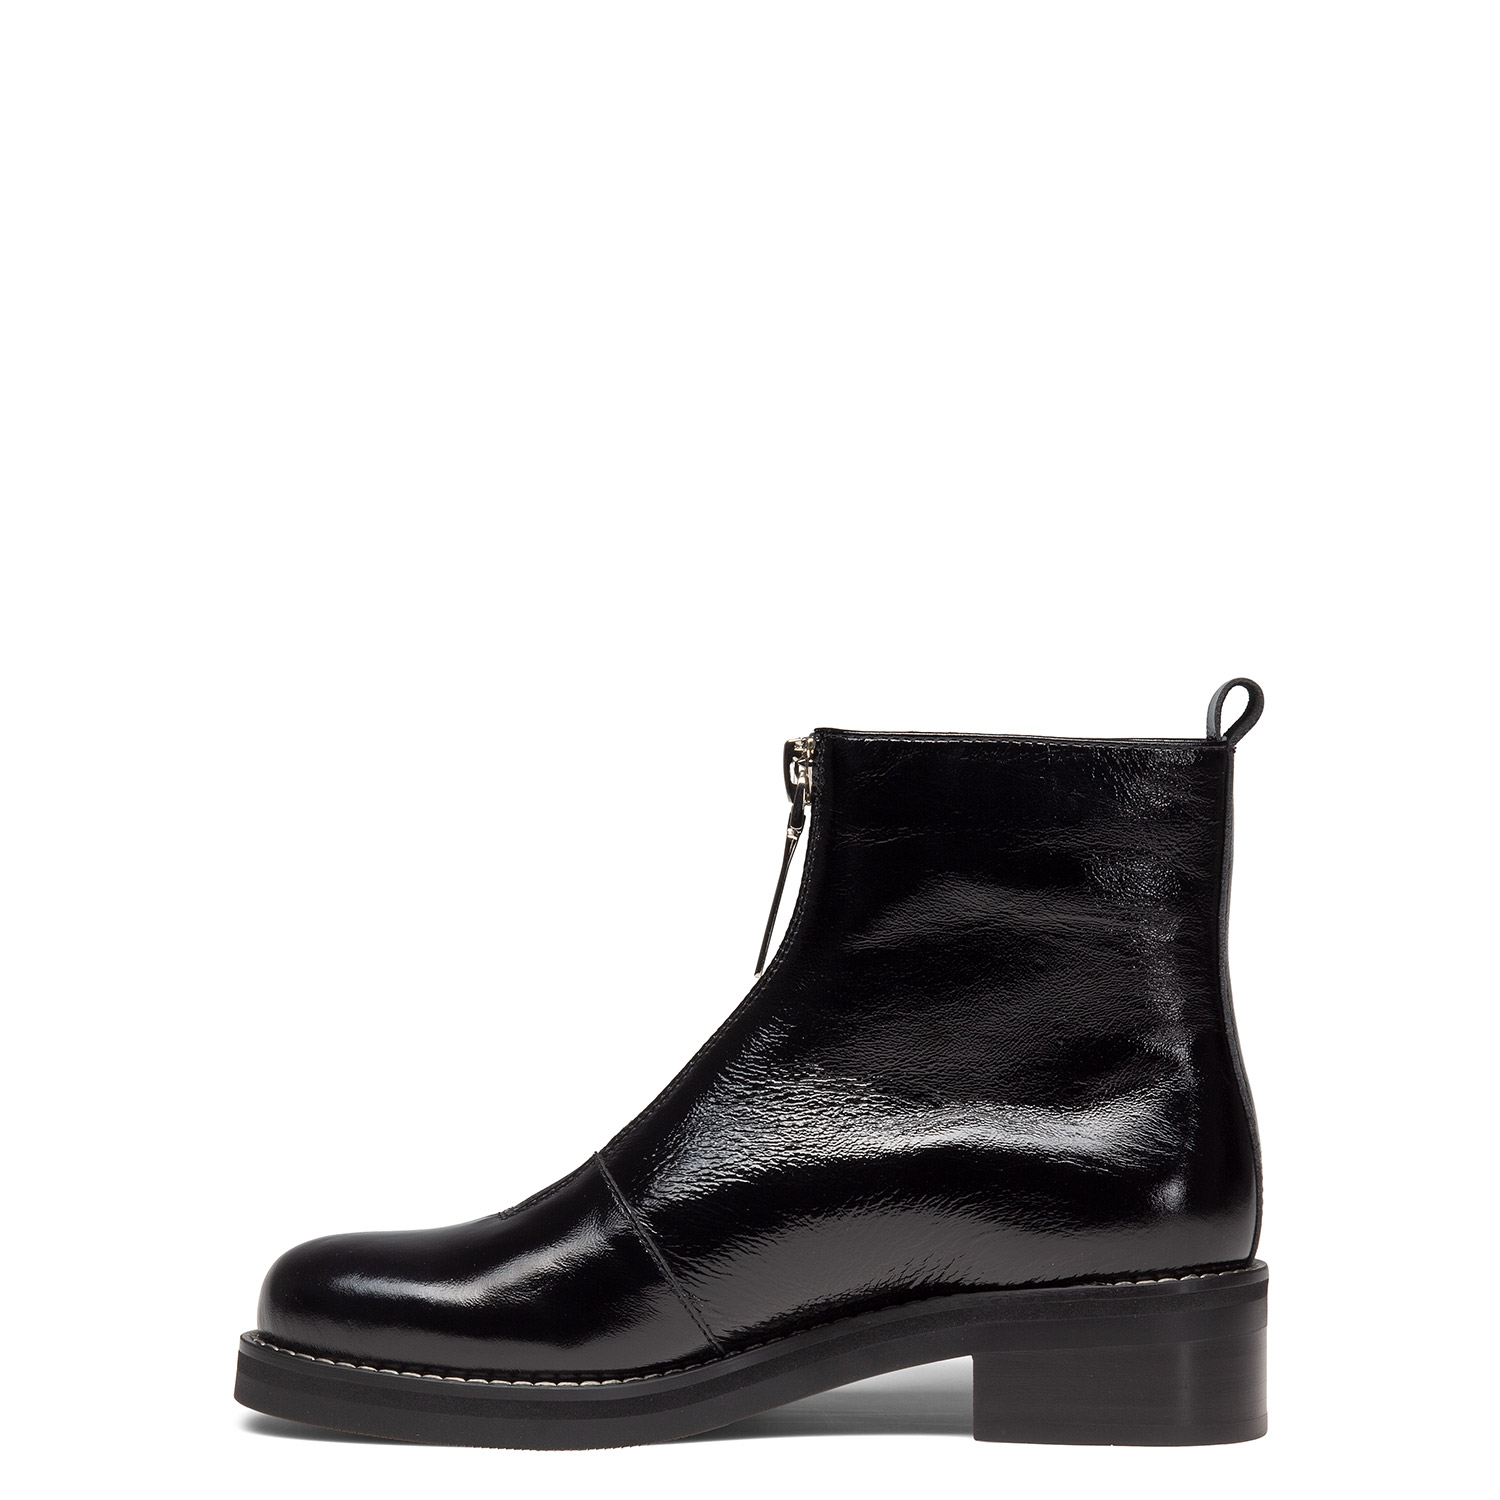 Women's ankle boots PAZOLINI JH-ILM7-1